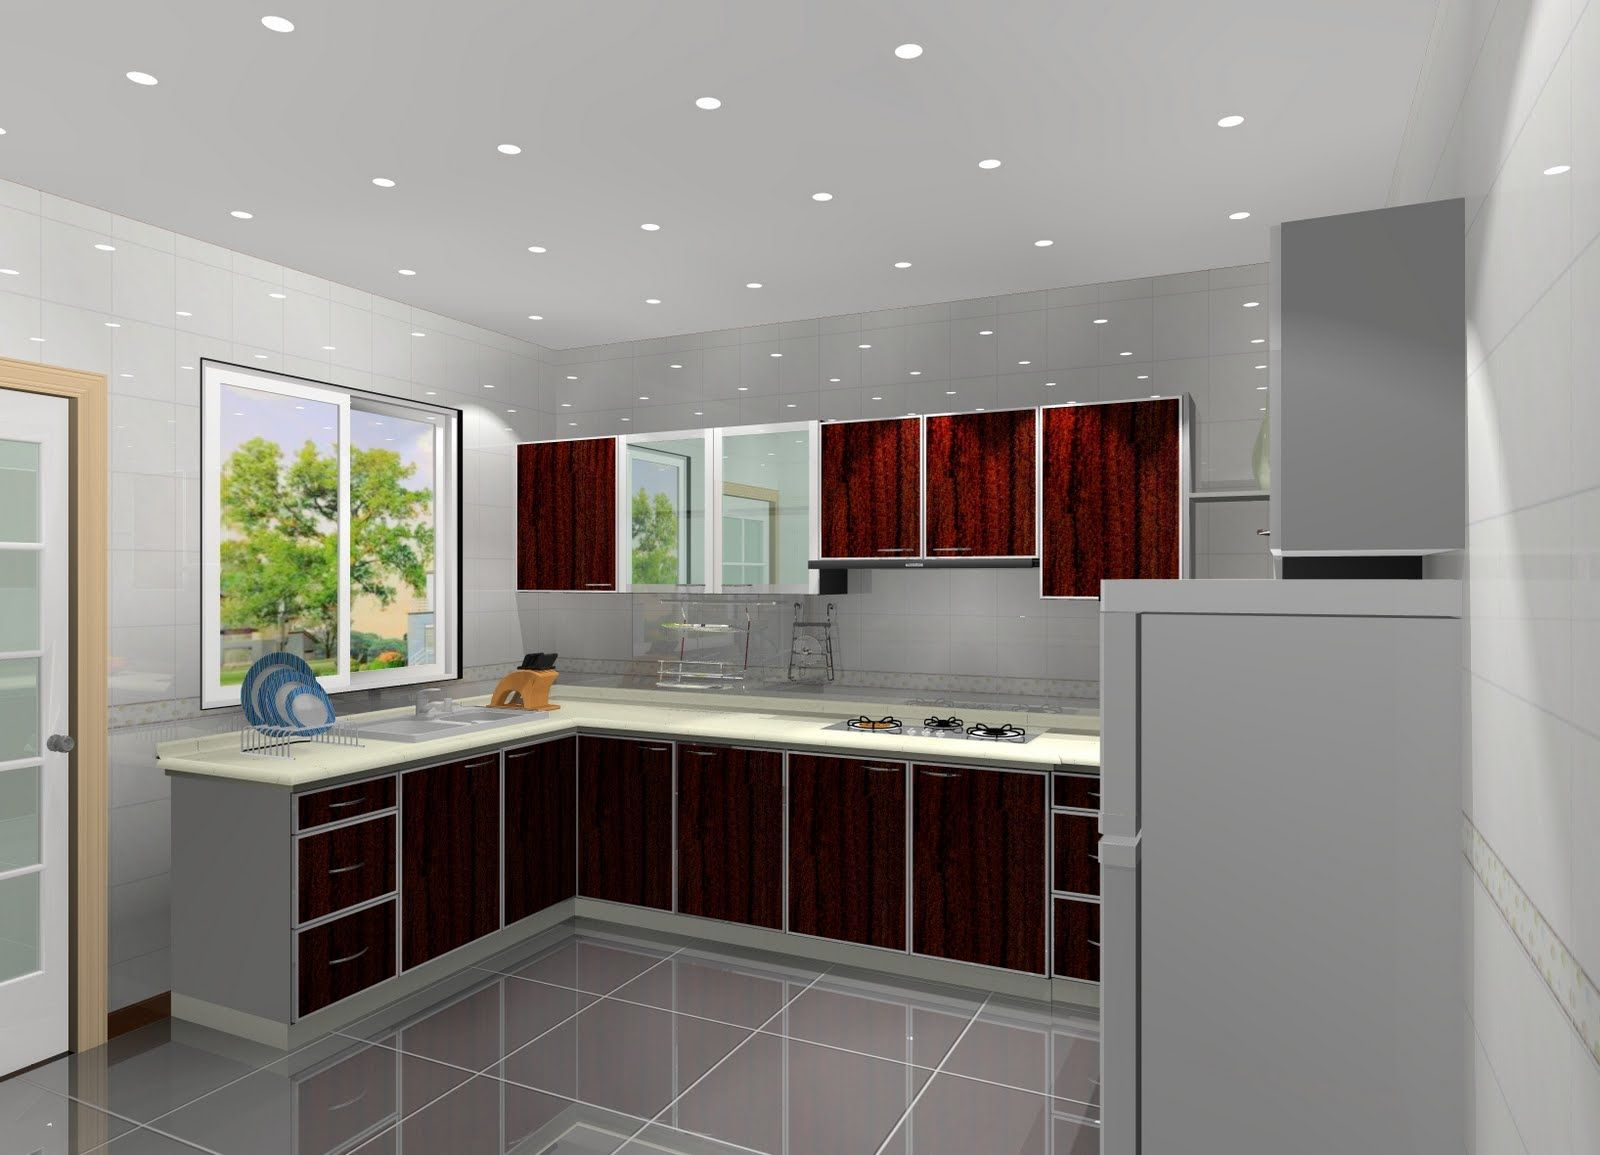 l type small kitchen design. find this pin and more on interior